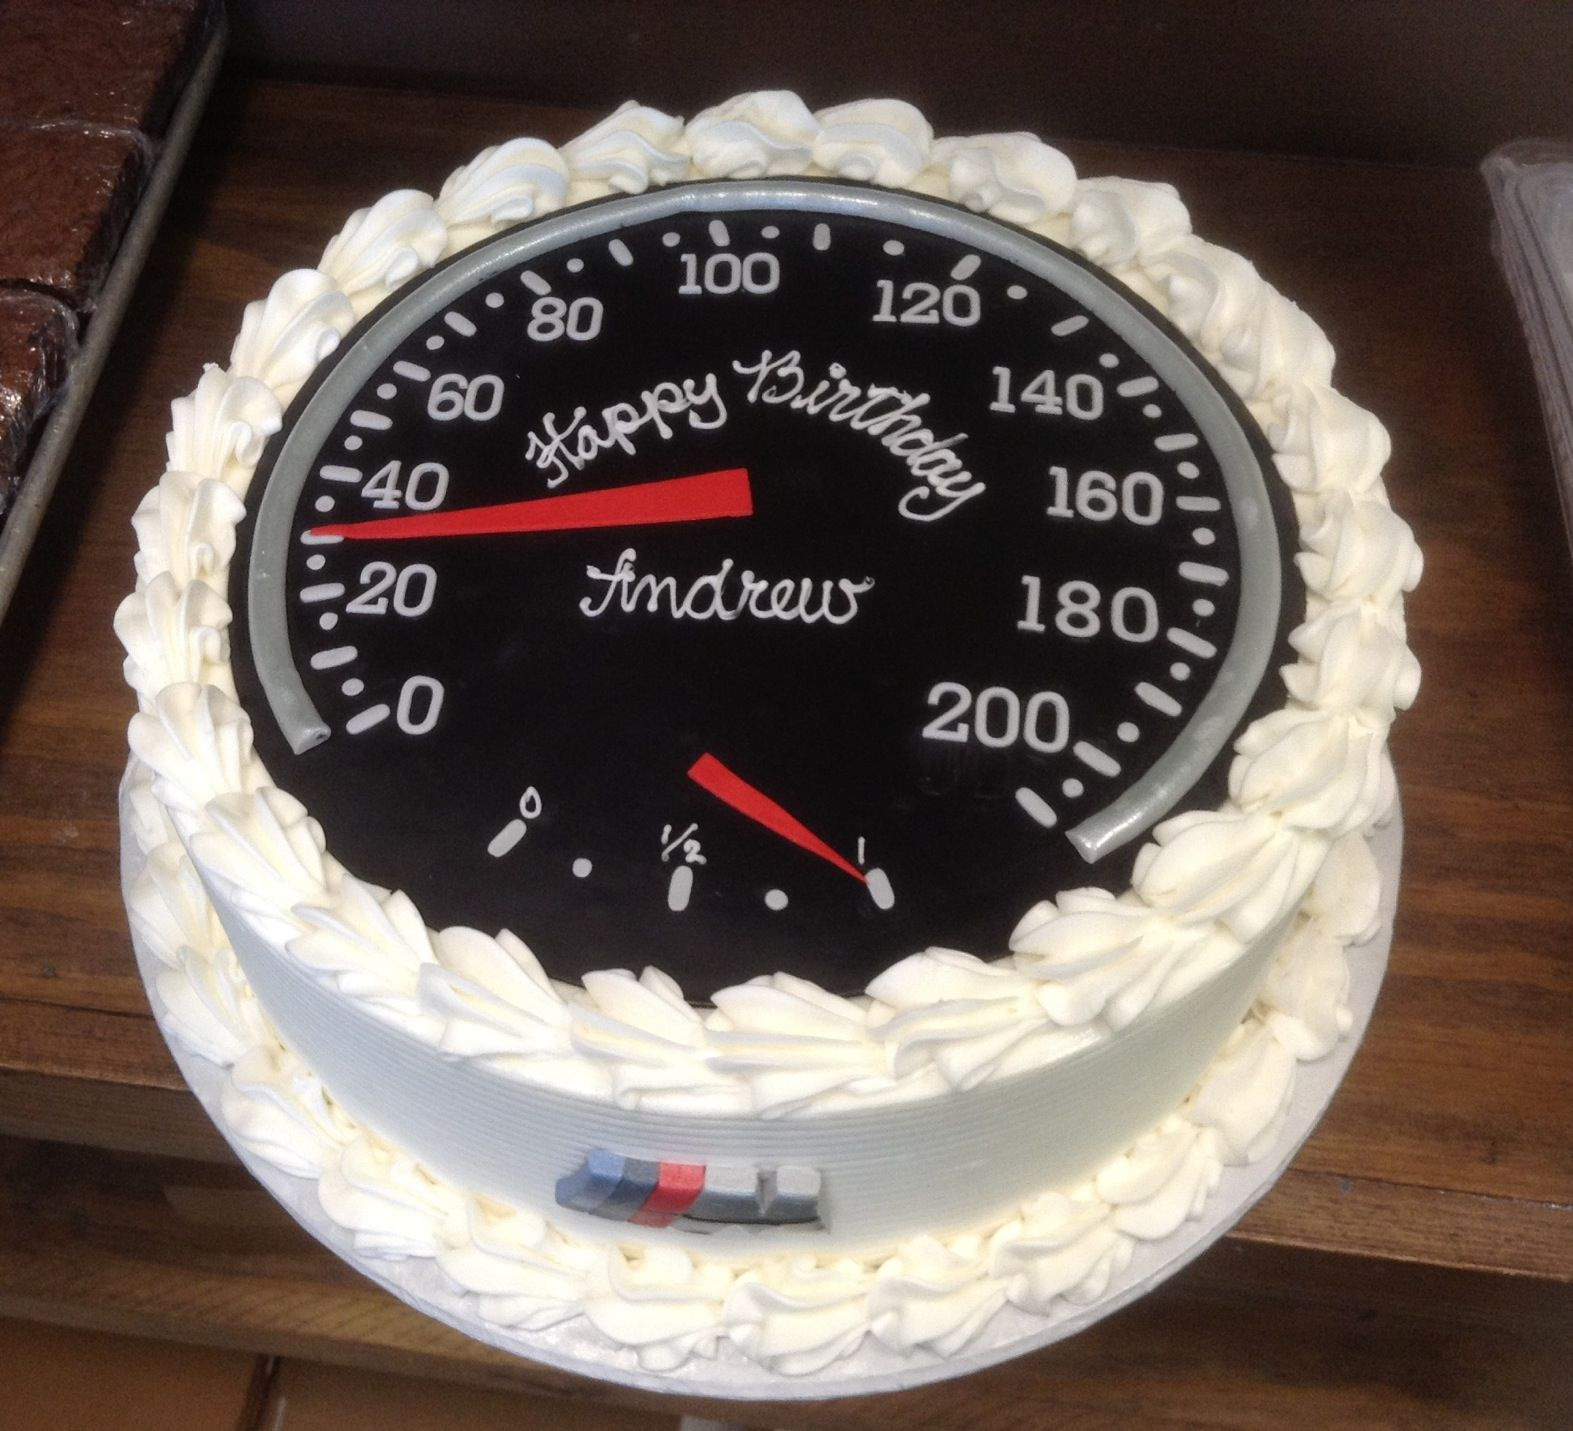 speed cake made by county line bakery Edmond oklahoma county